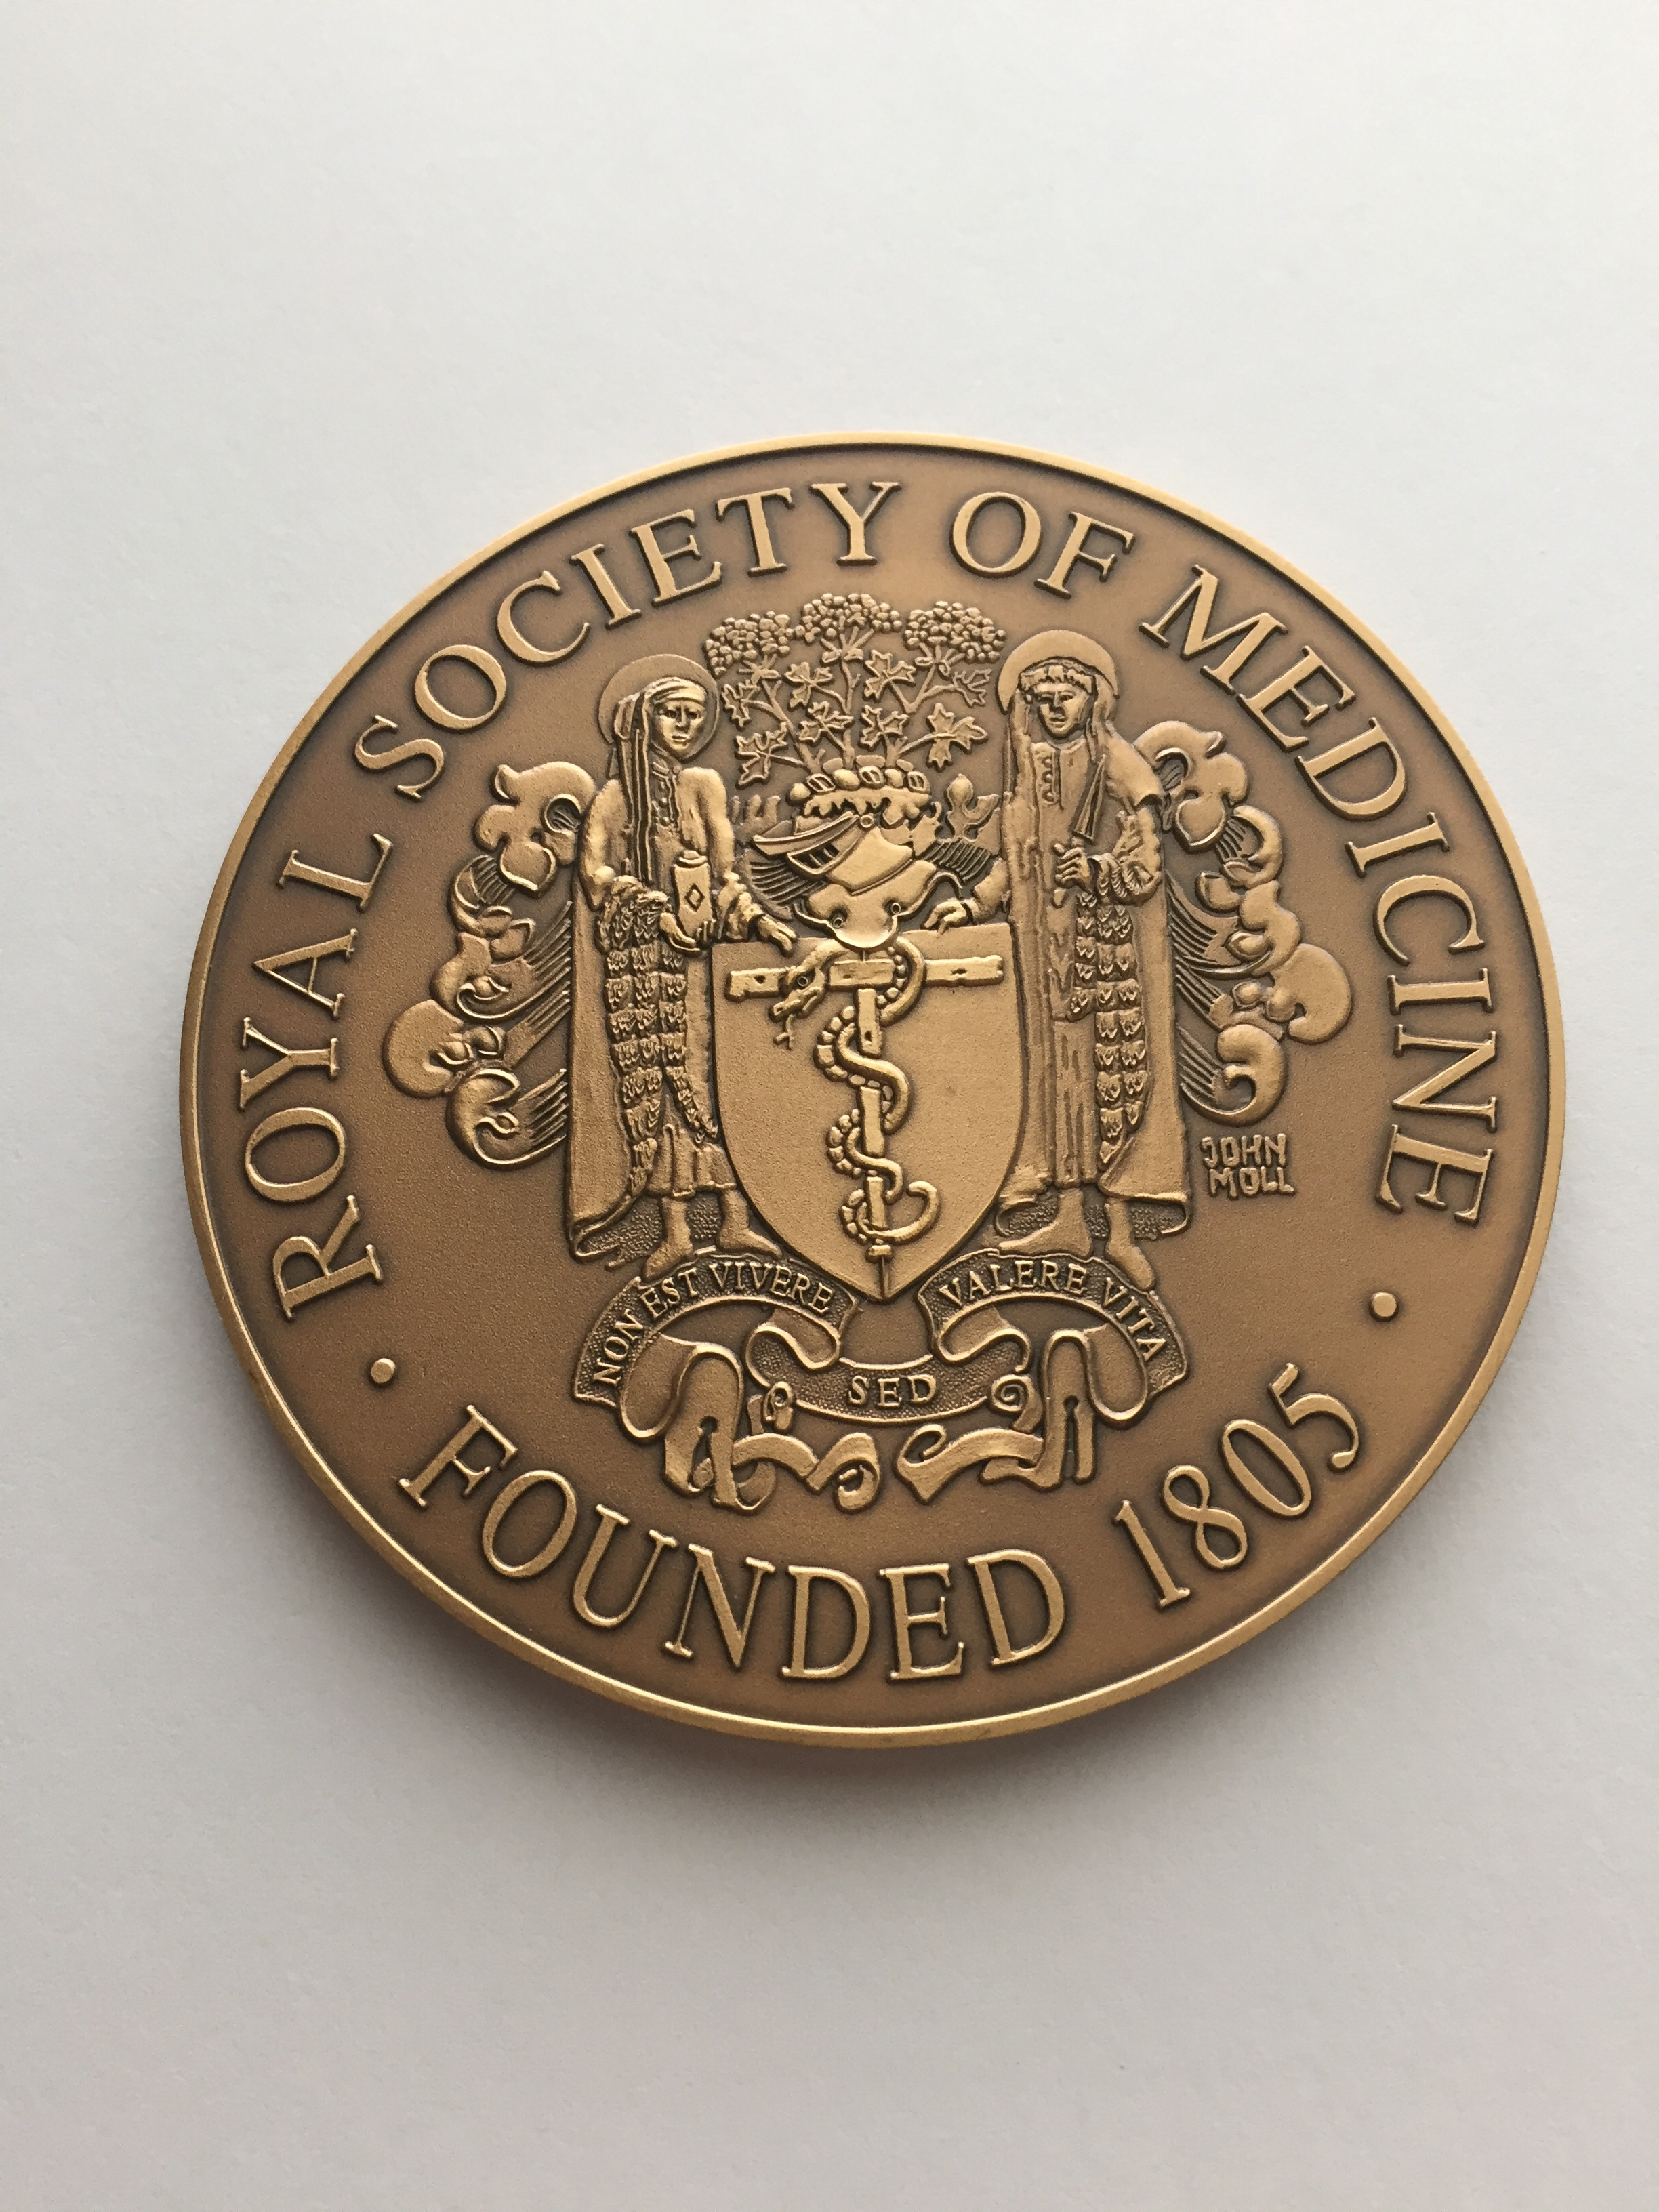 Royal Society of Medicine medal which was awarded to Professor Alan C Roberts.